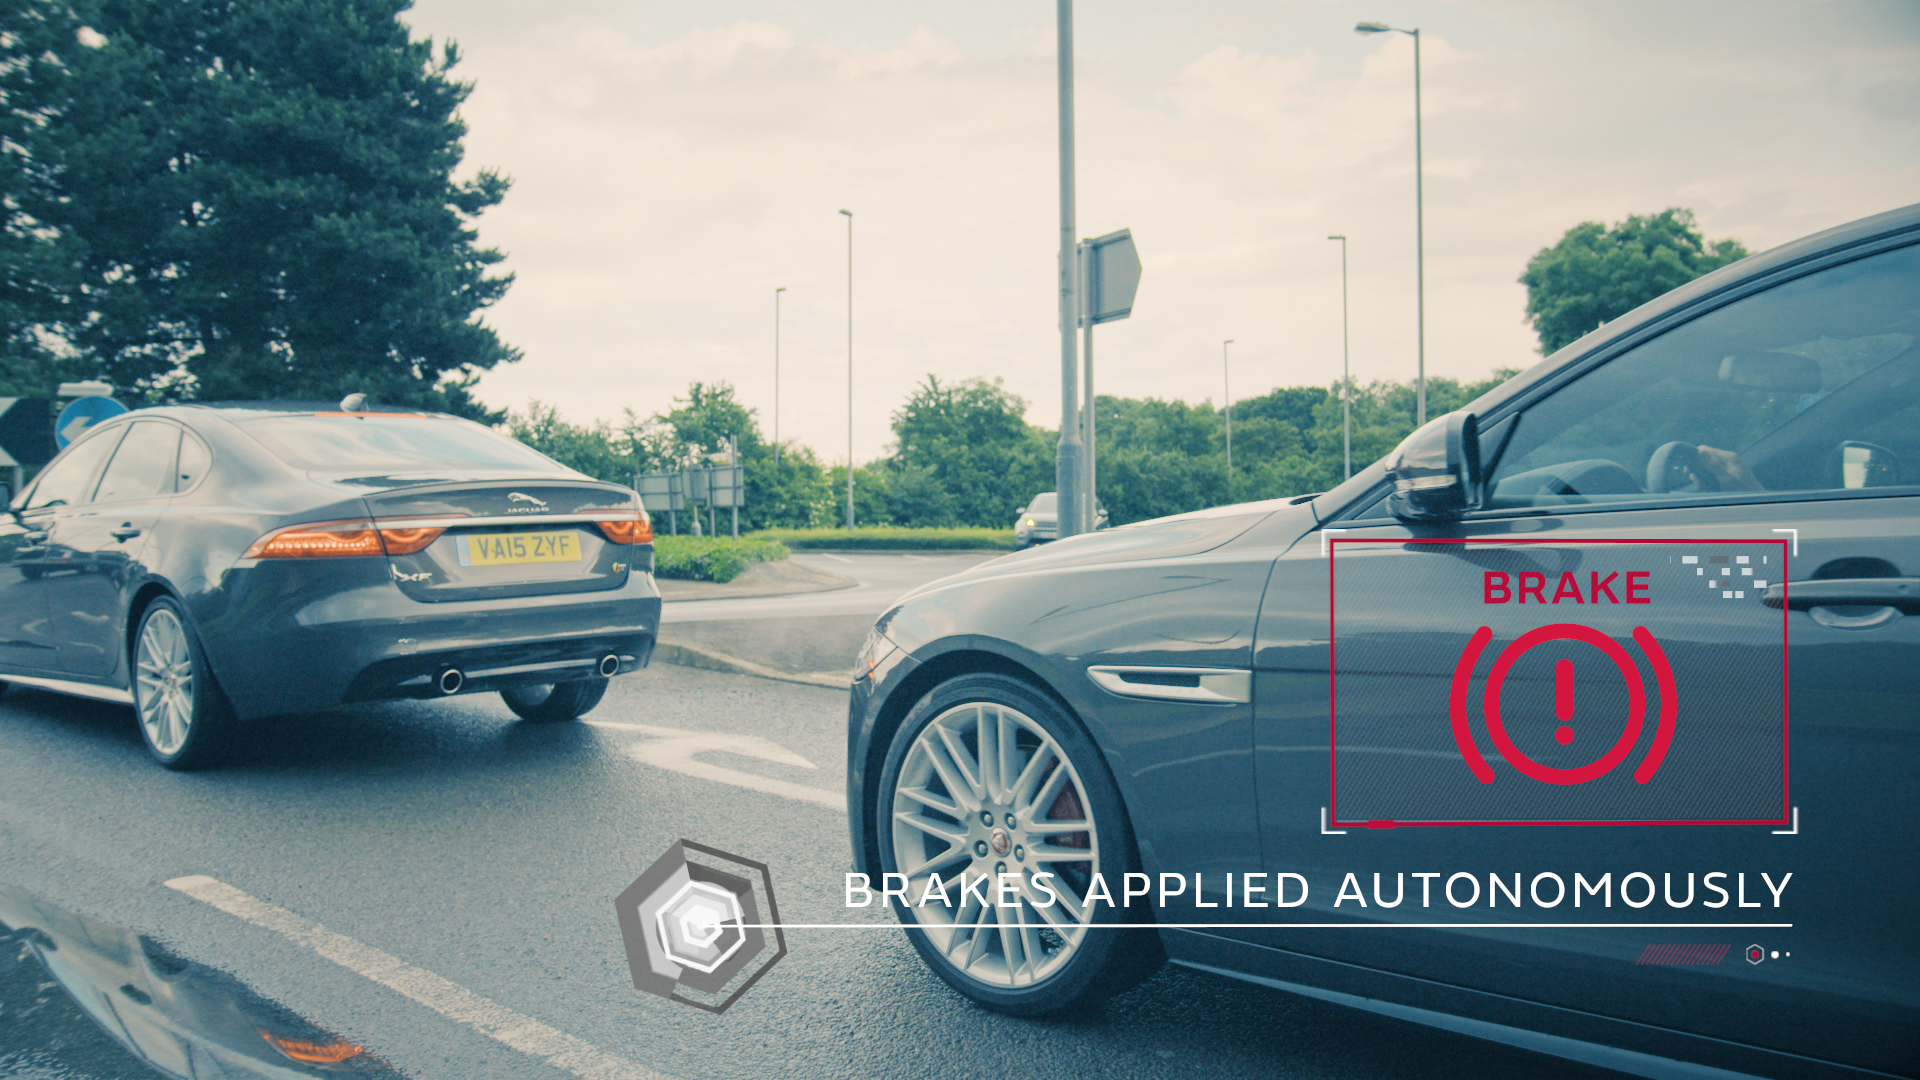 Connected & Autonomous Vehicle (CAV) technologies -Safe Pullaway is an assistance system to prevent low speed collisions - image courtesy of JLR.